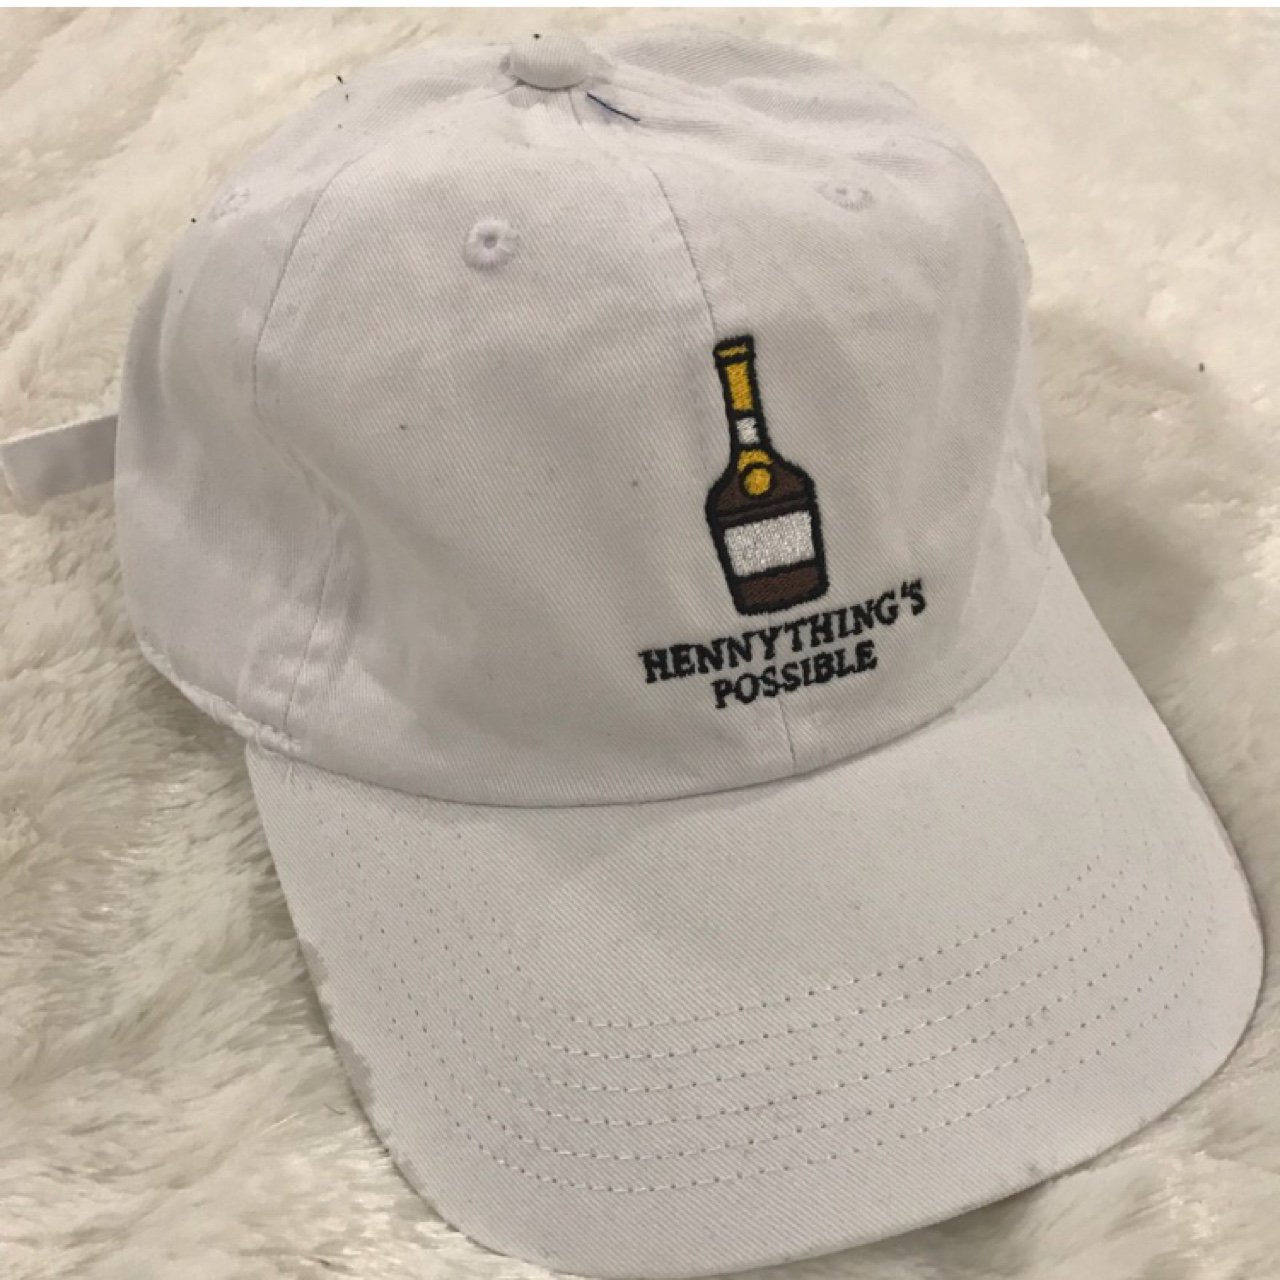 536f98bed42 White hennything possible dad hat❗️for the henny lovers 👀 - Depop